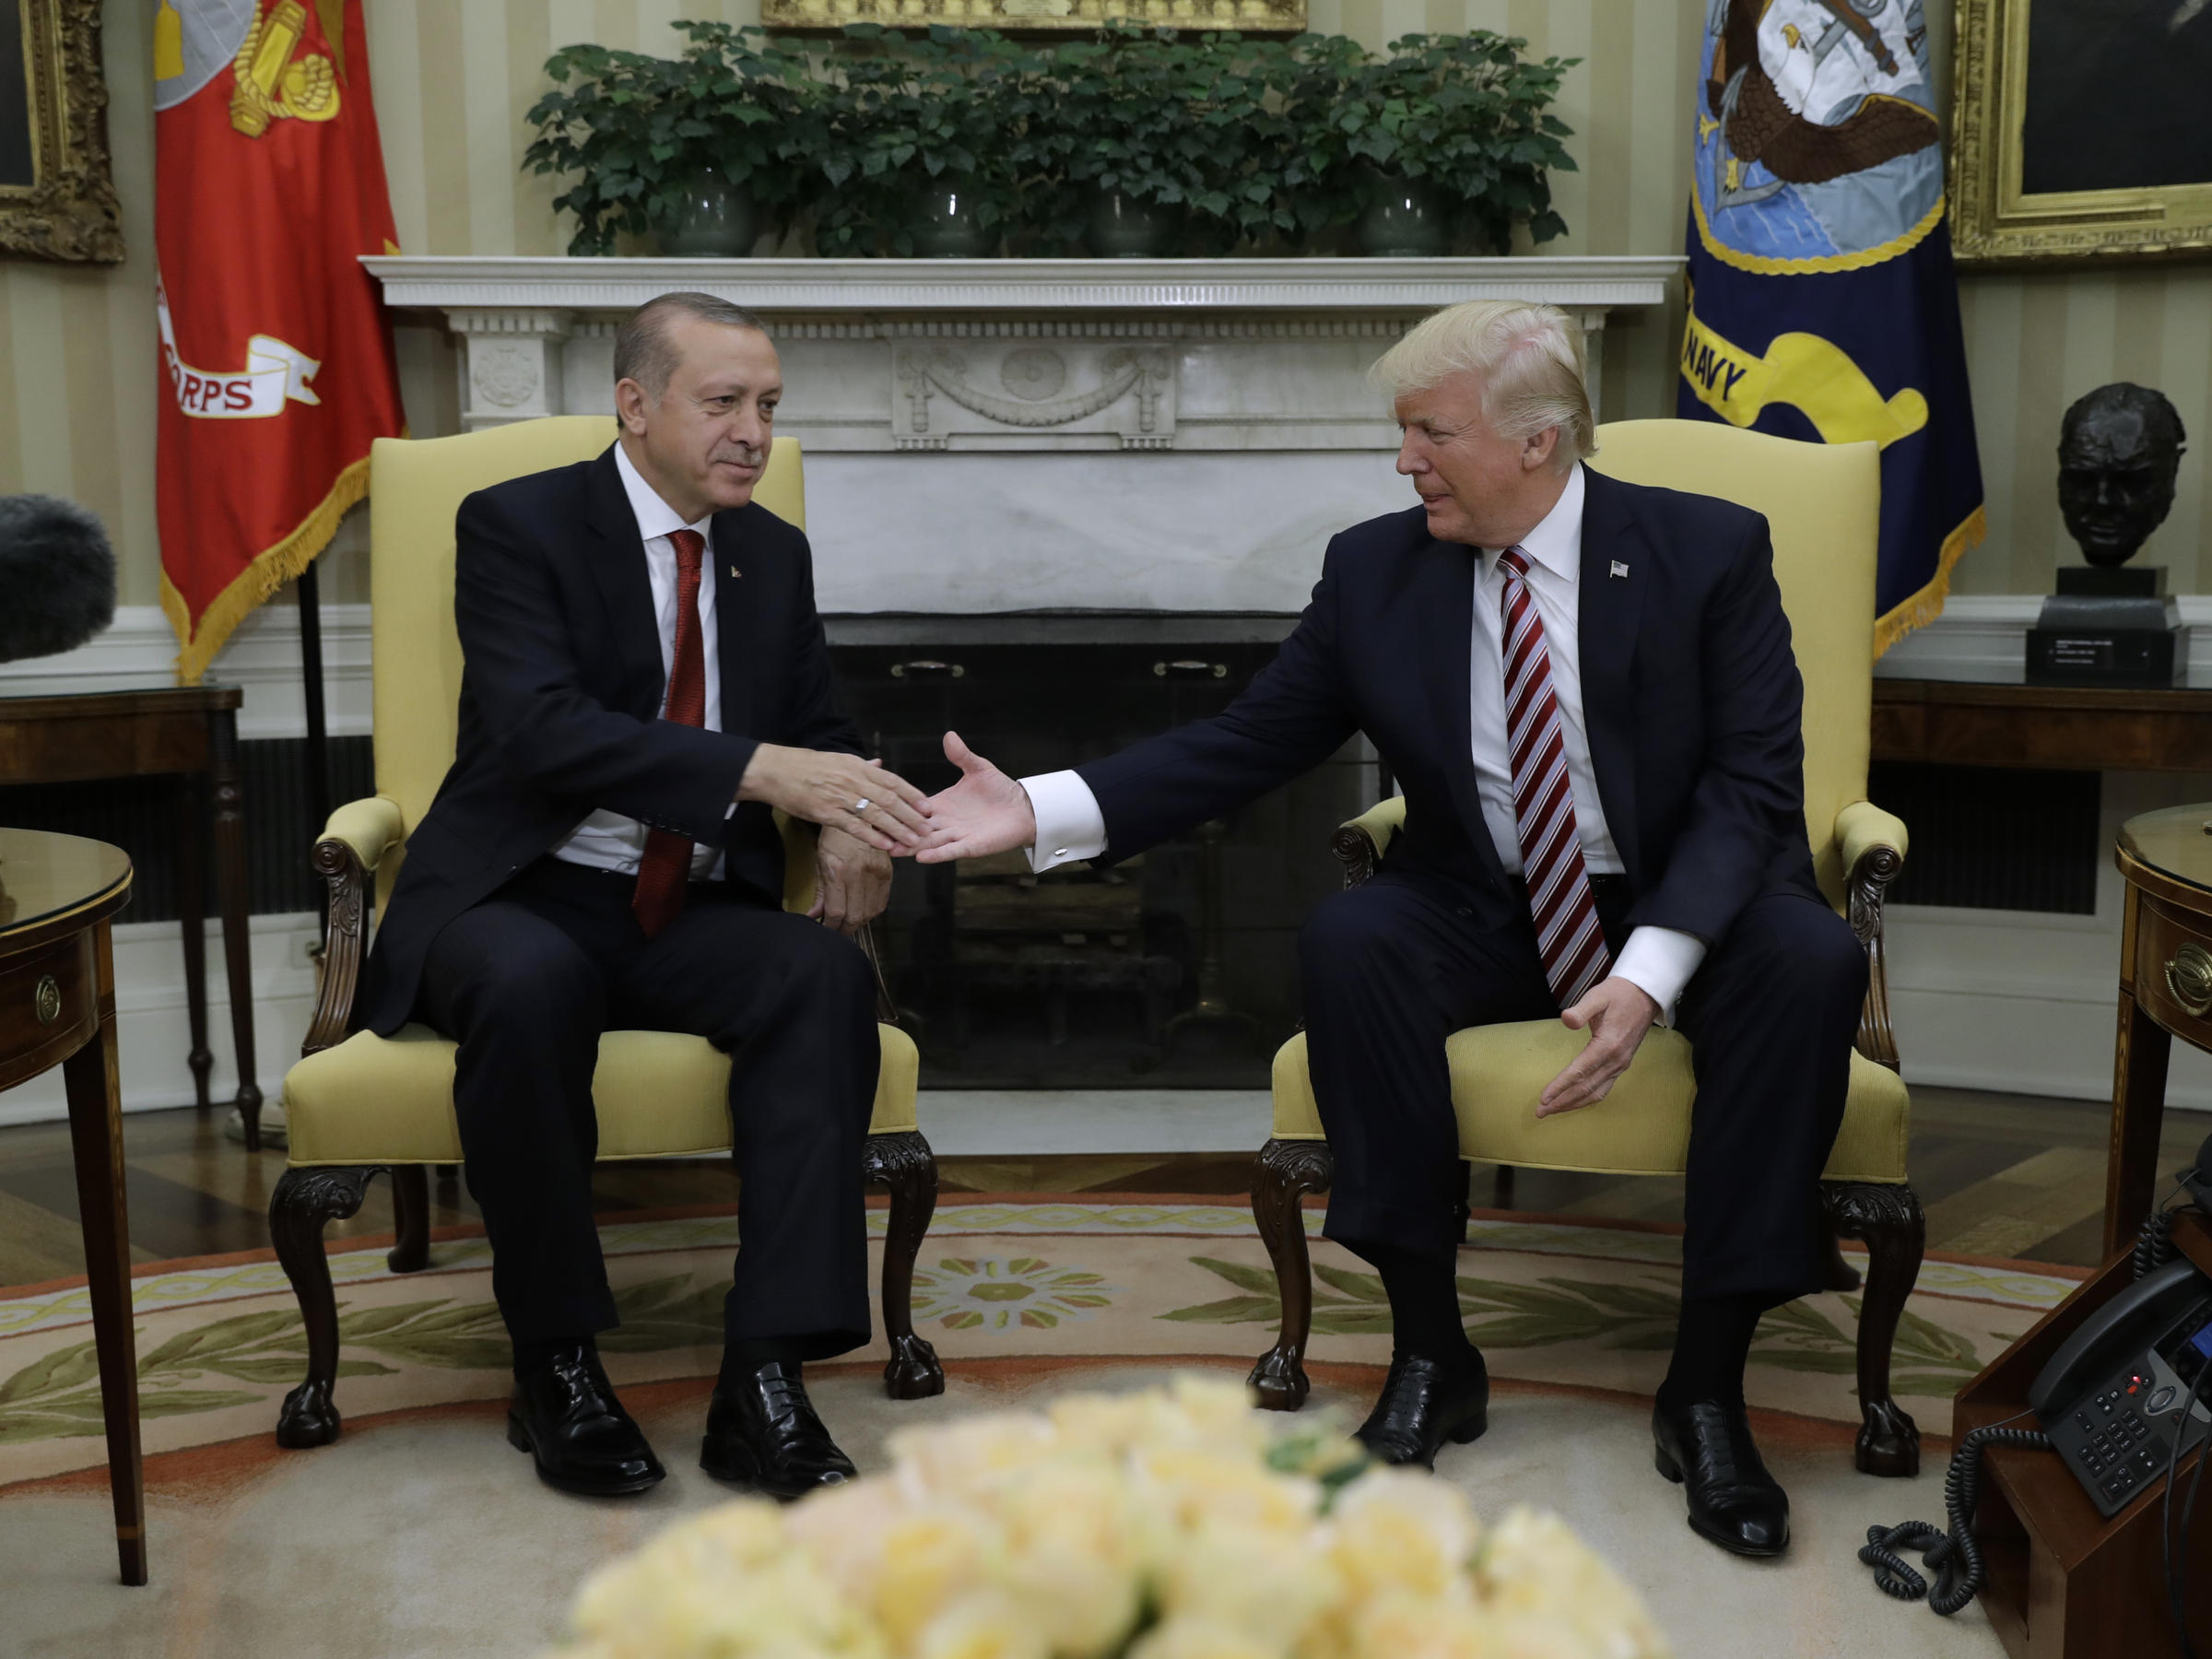 President Trump hosted Turkish President Recep Tayyip Erdogan in Washington on Tuesday